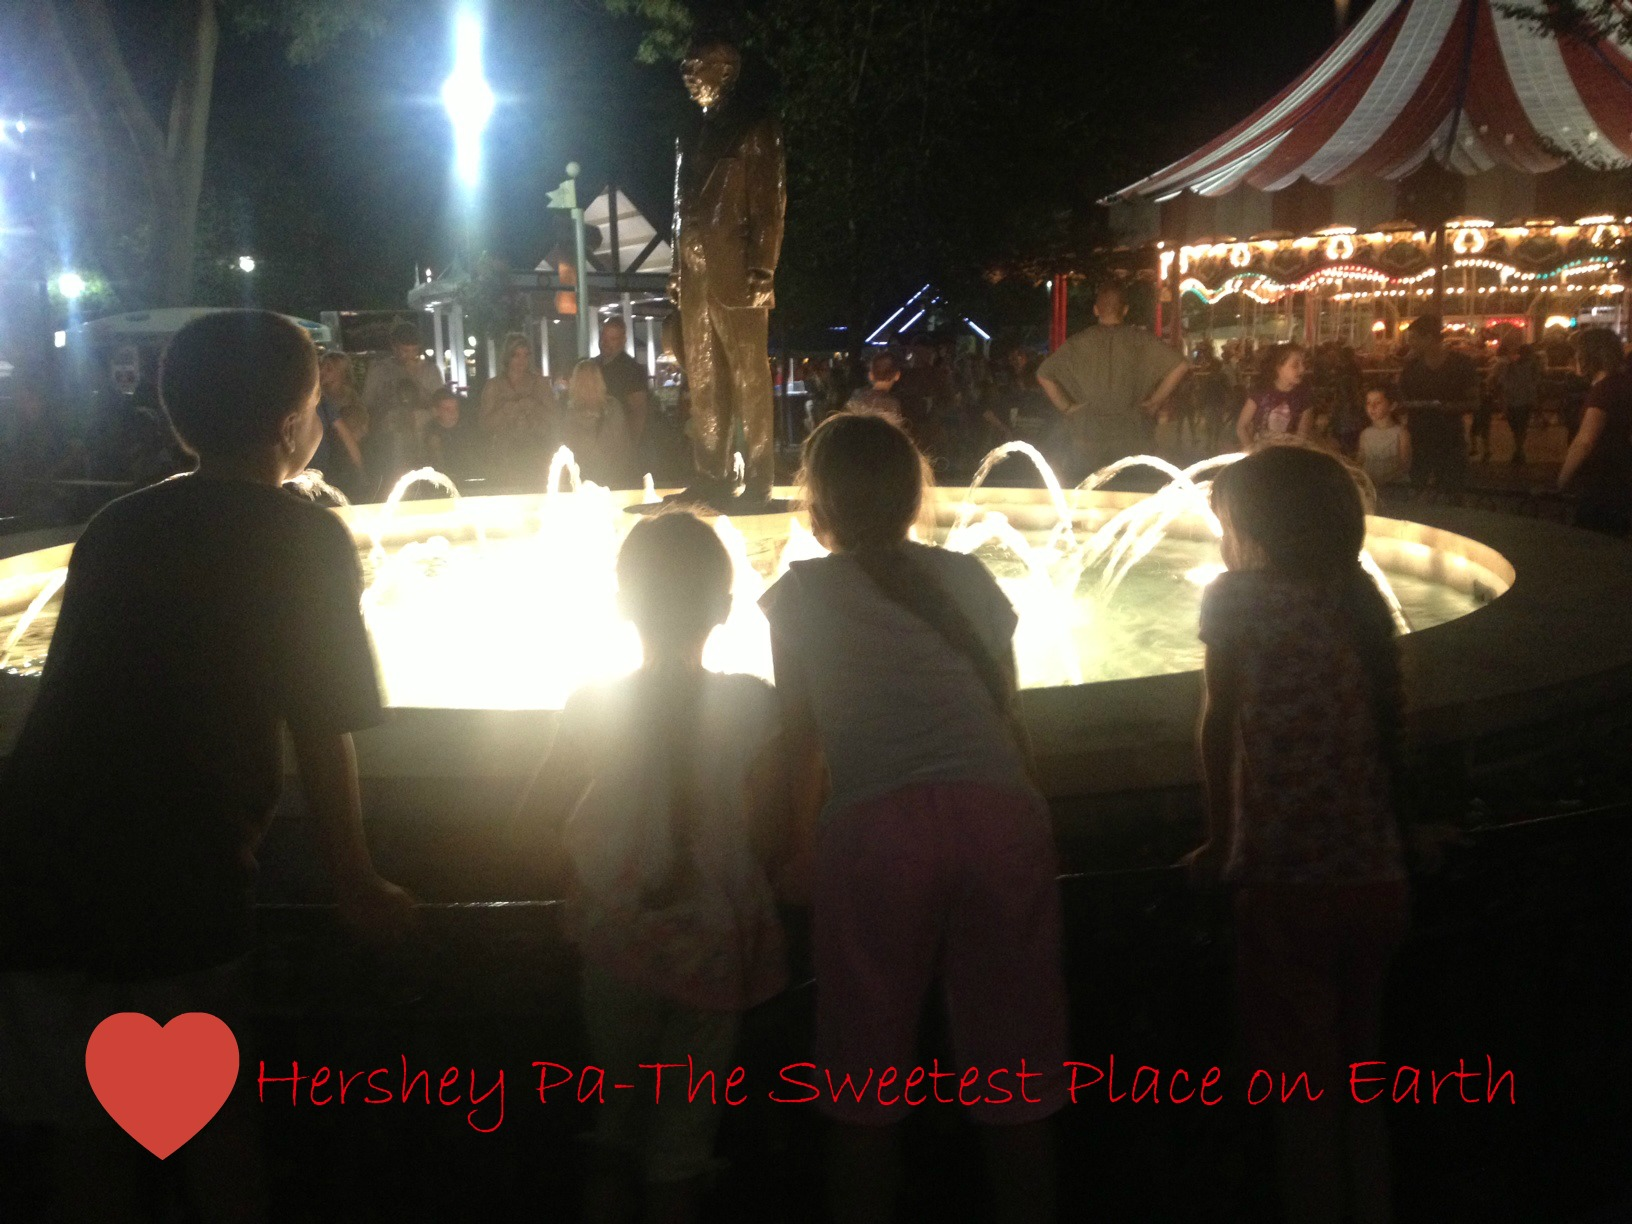 Hershey Pennsylvania–A fun place to take the family!